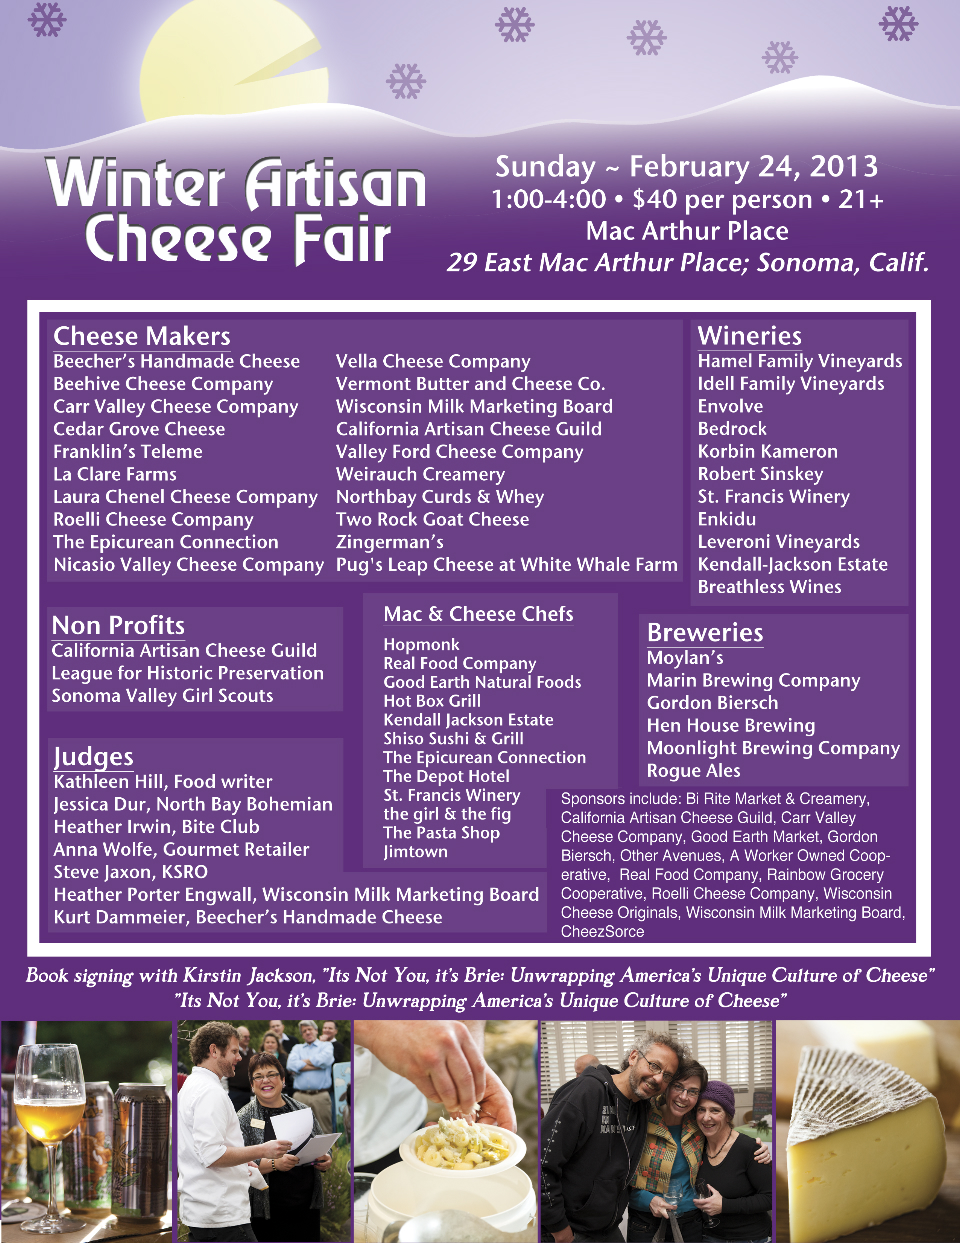 WinterArtisanCheeseFair